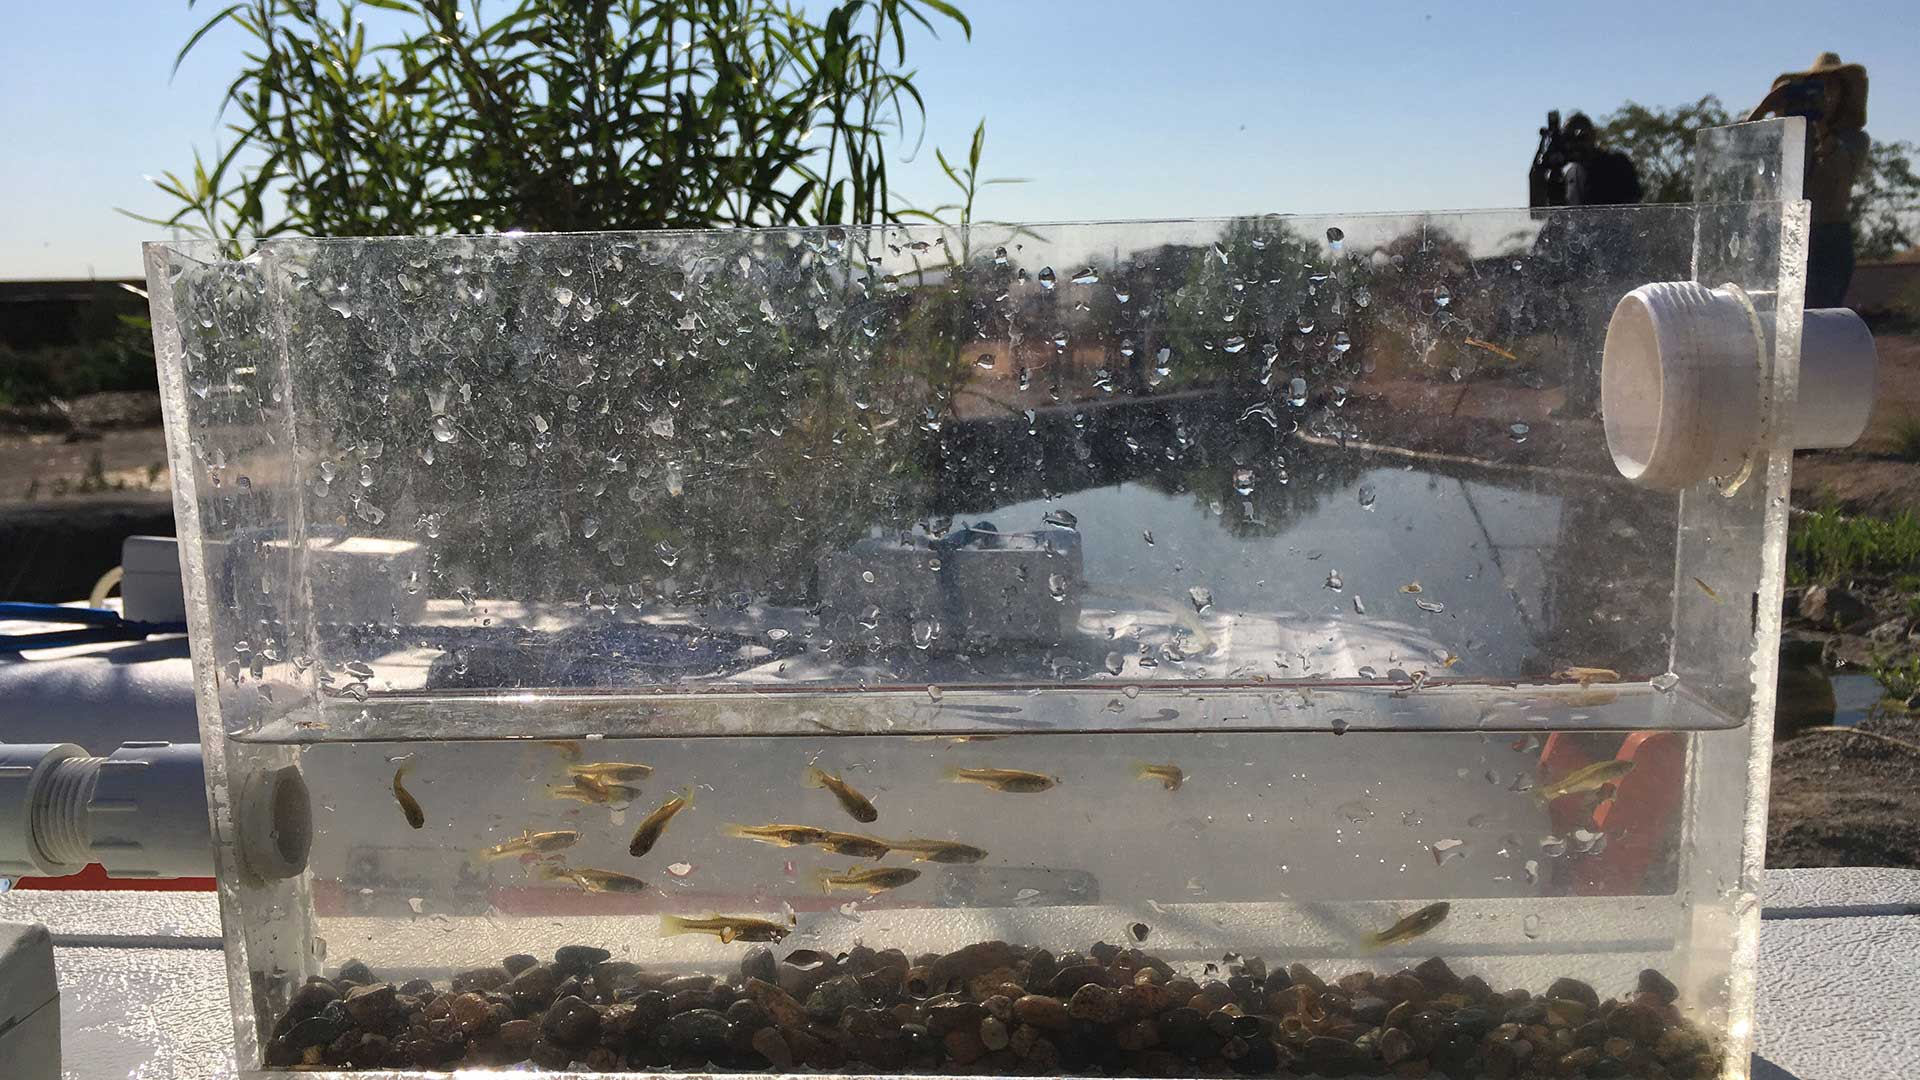 Gila topminnows wait to be introduced to new habitat in the acequia at Mission Garden.